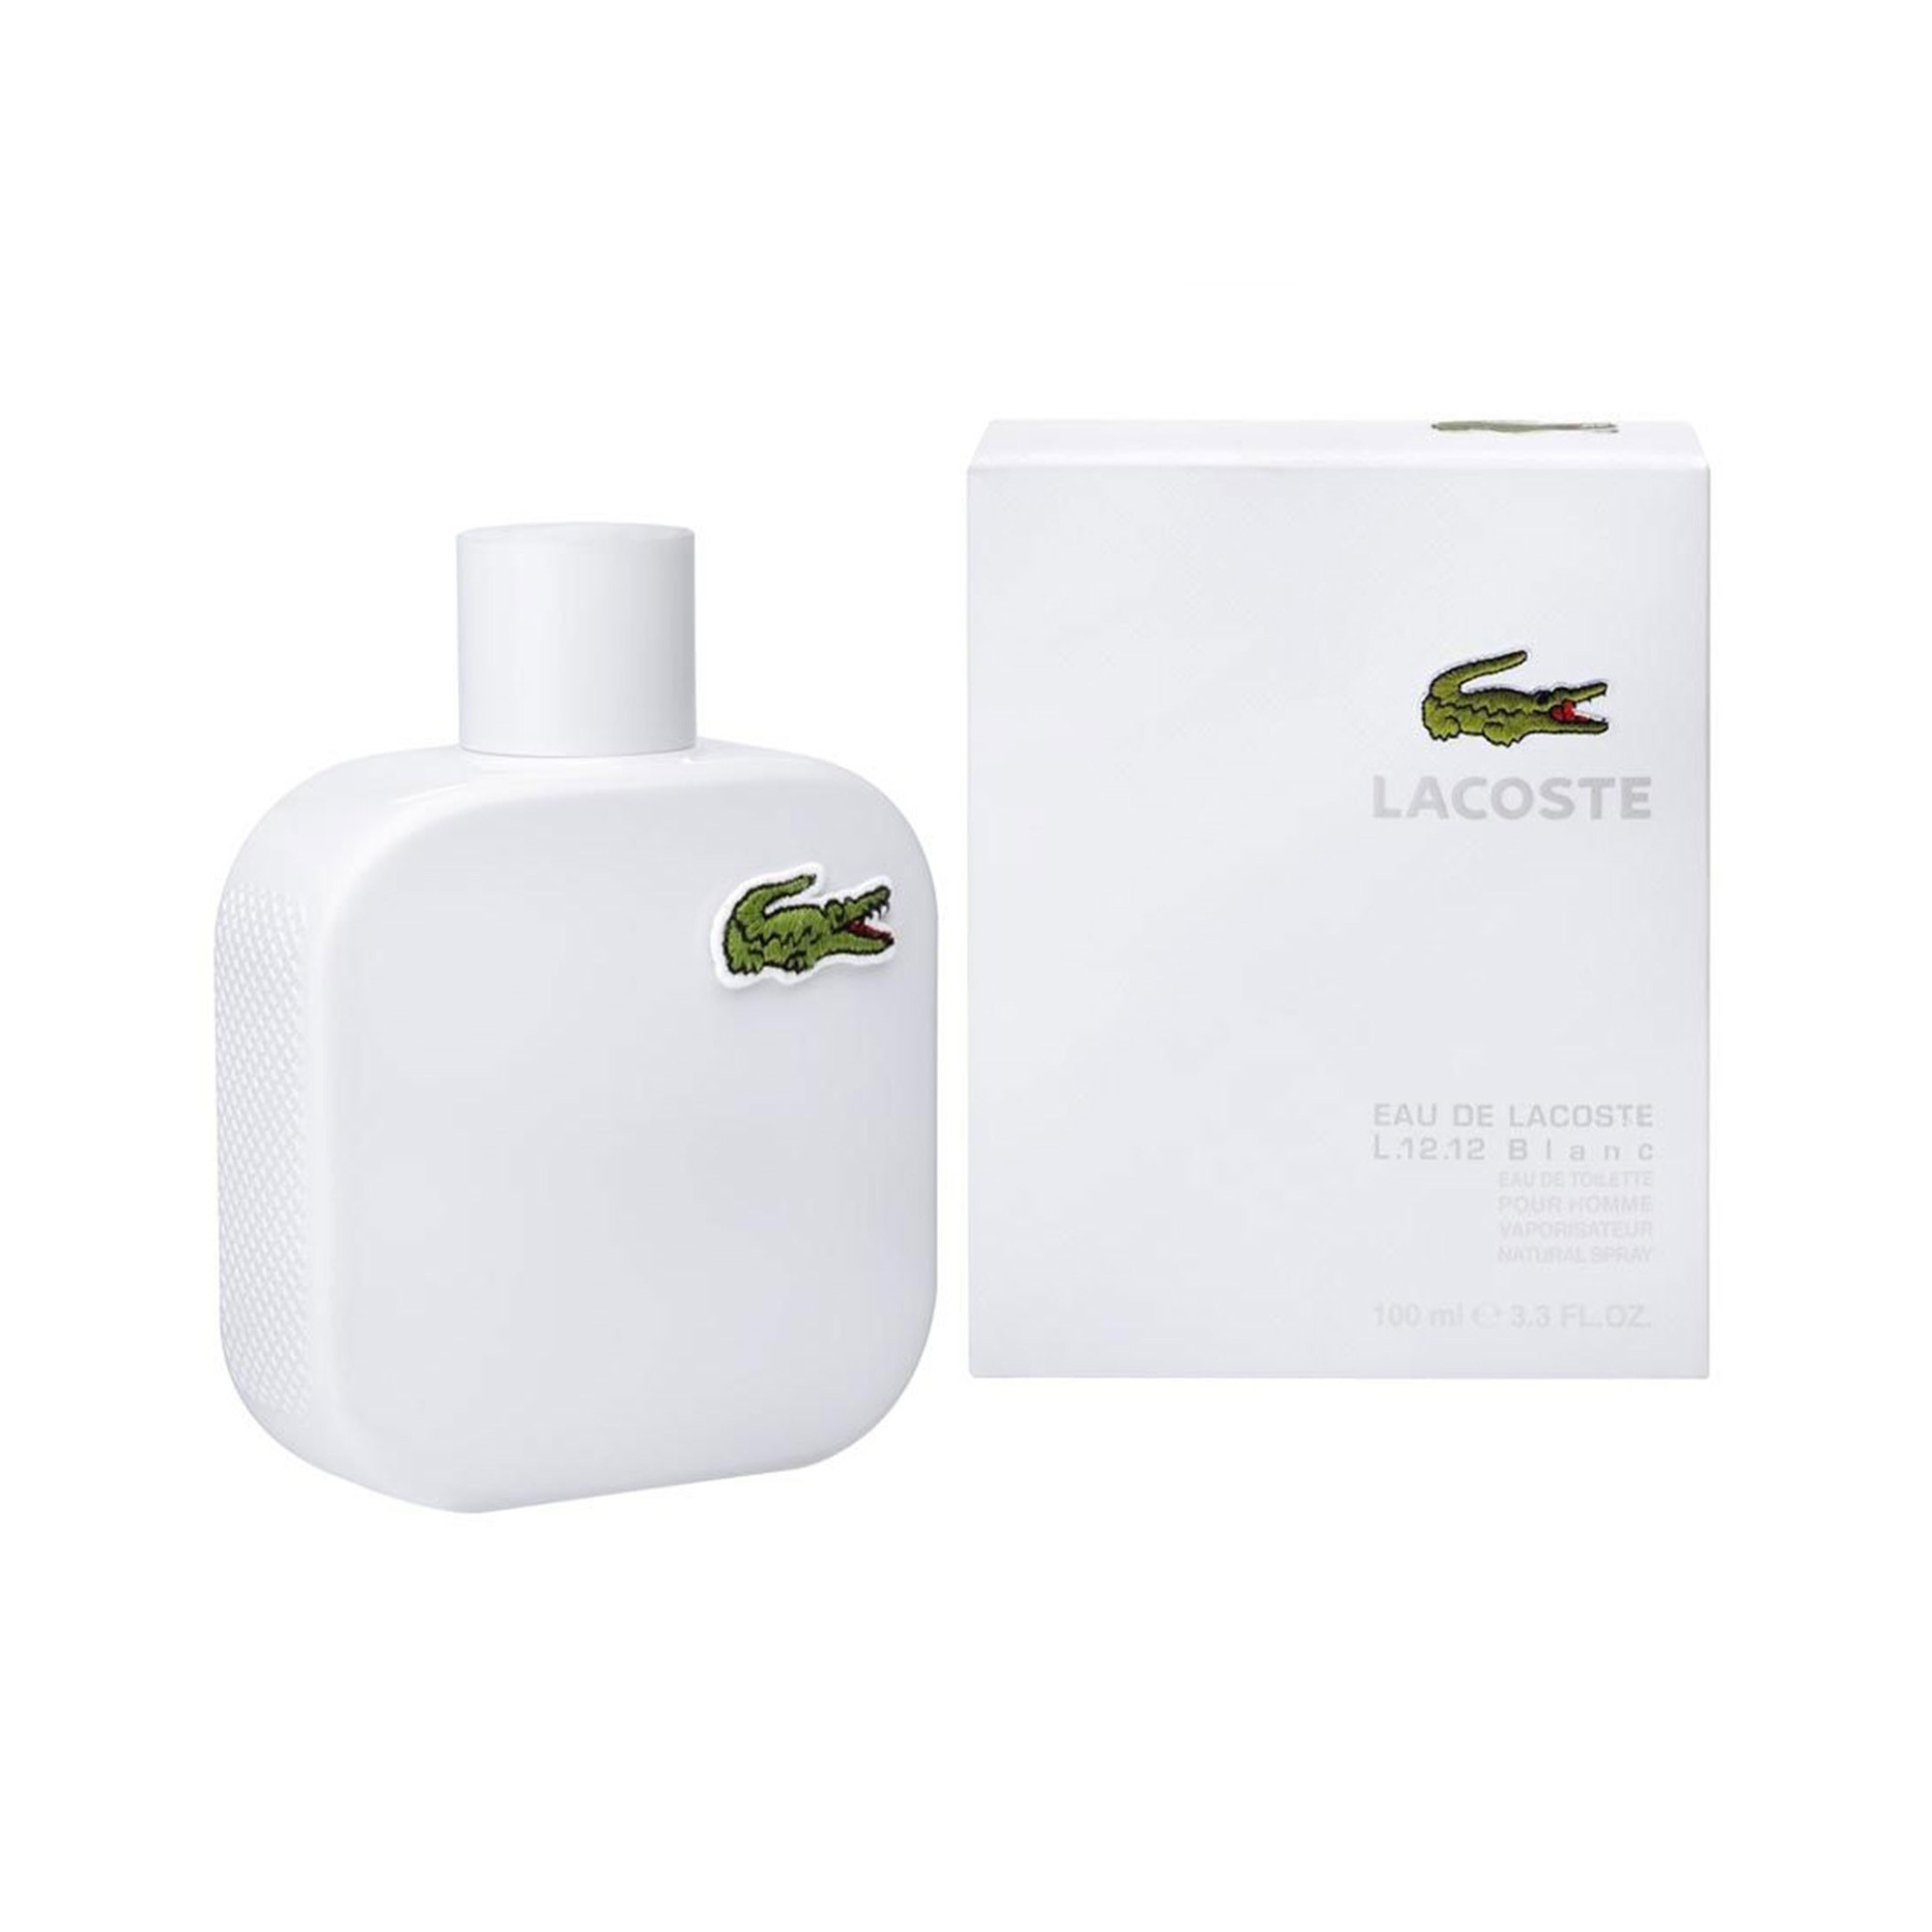 Eau De Lacoste Blanc Pure L.12.12 Men's 100 ml